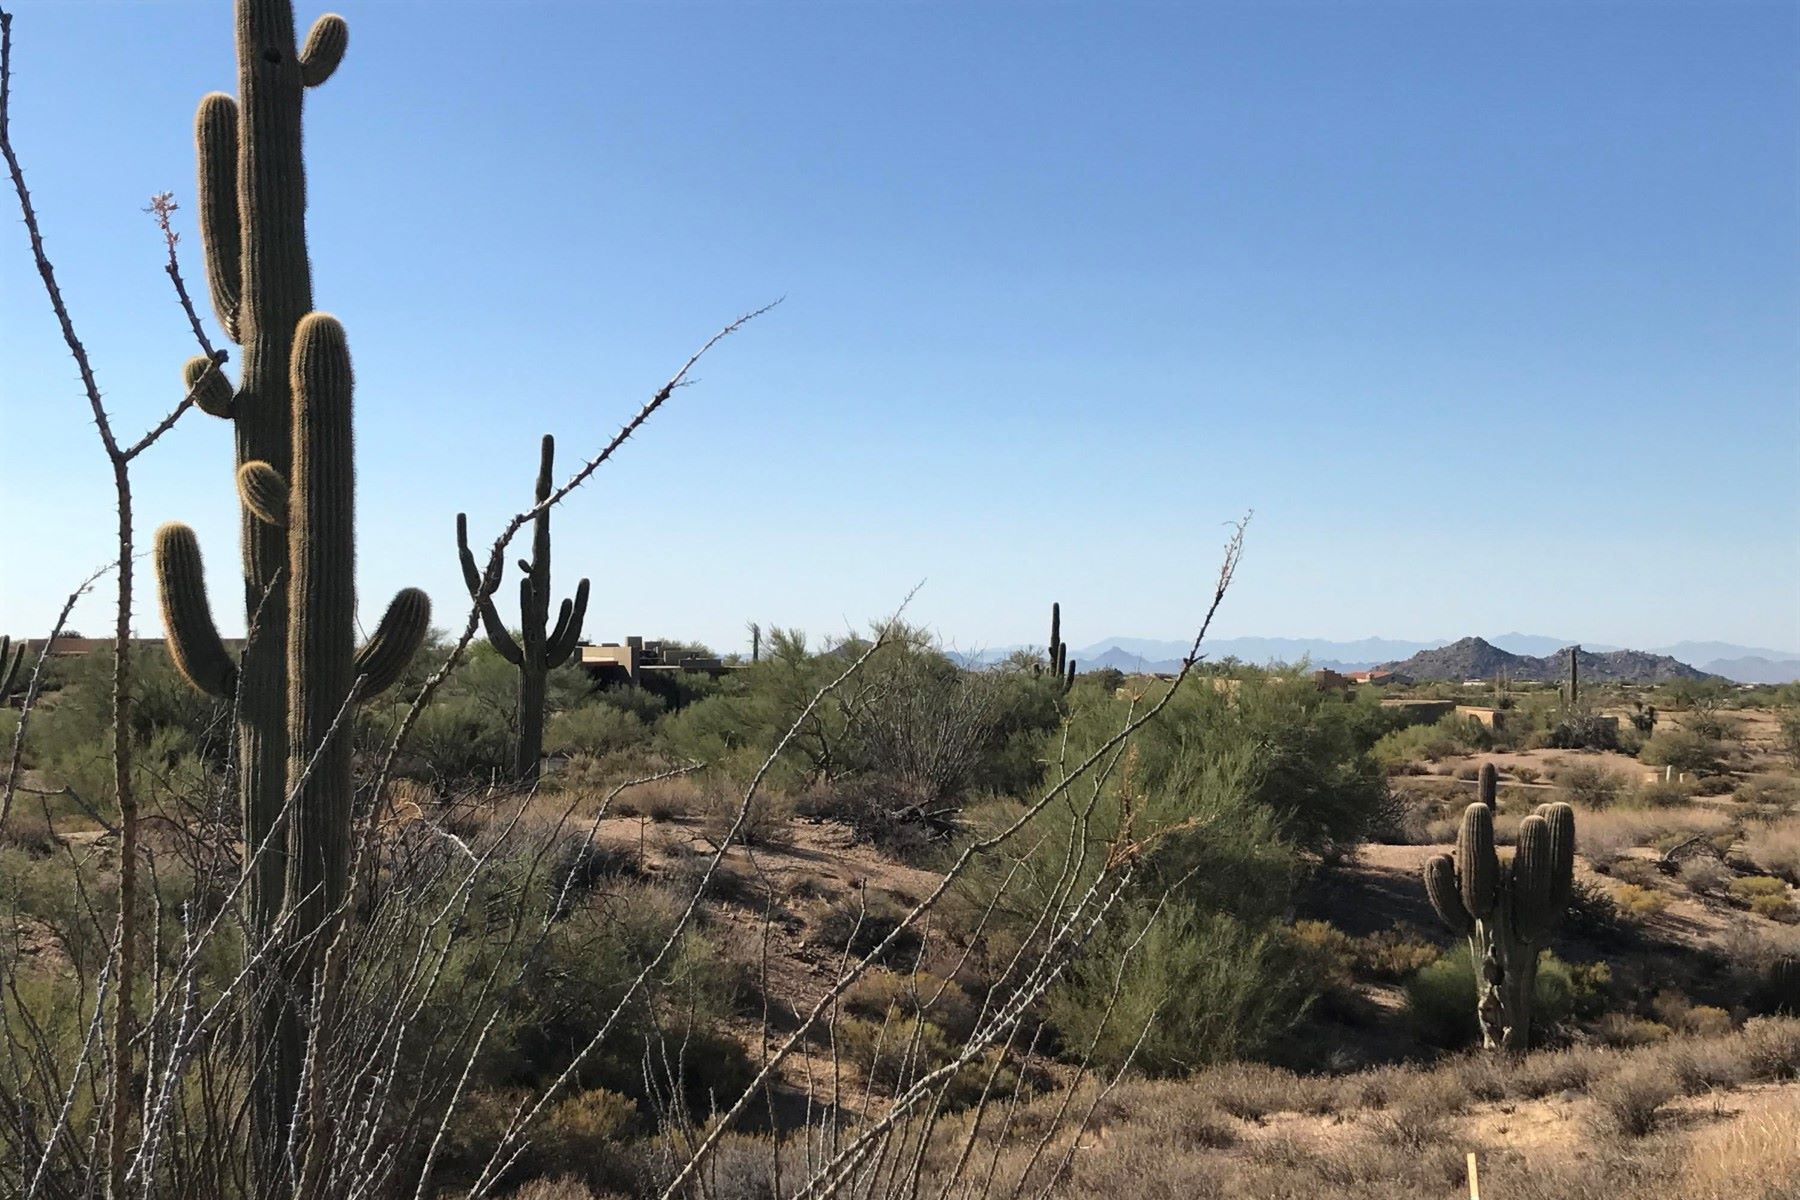 Land for Sale at Elevated lot in Desert Mountain 9946 E HAPPY HOLLOW DR 157, Scottsdale, Arizona, 85262 United States